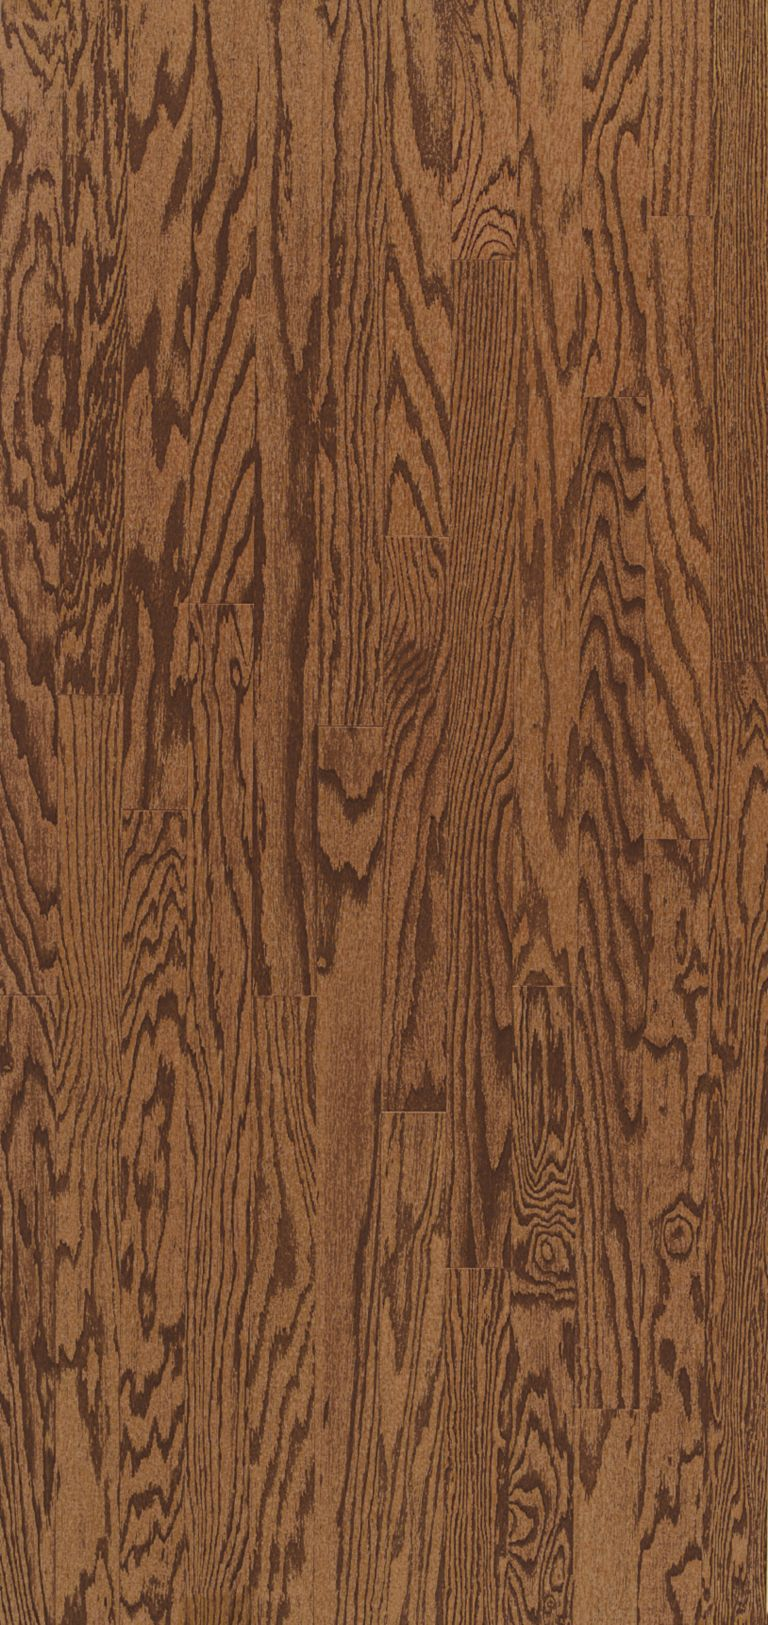 Roble - Woodstock Madera E557